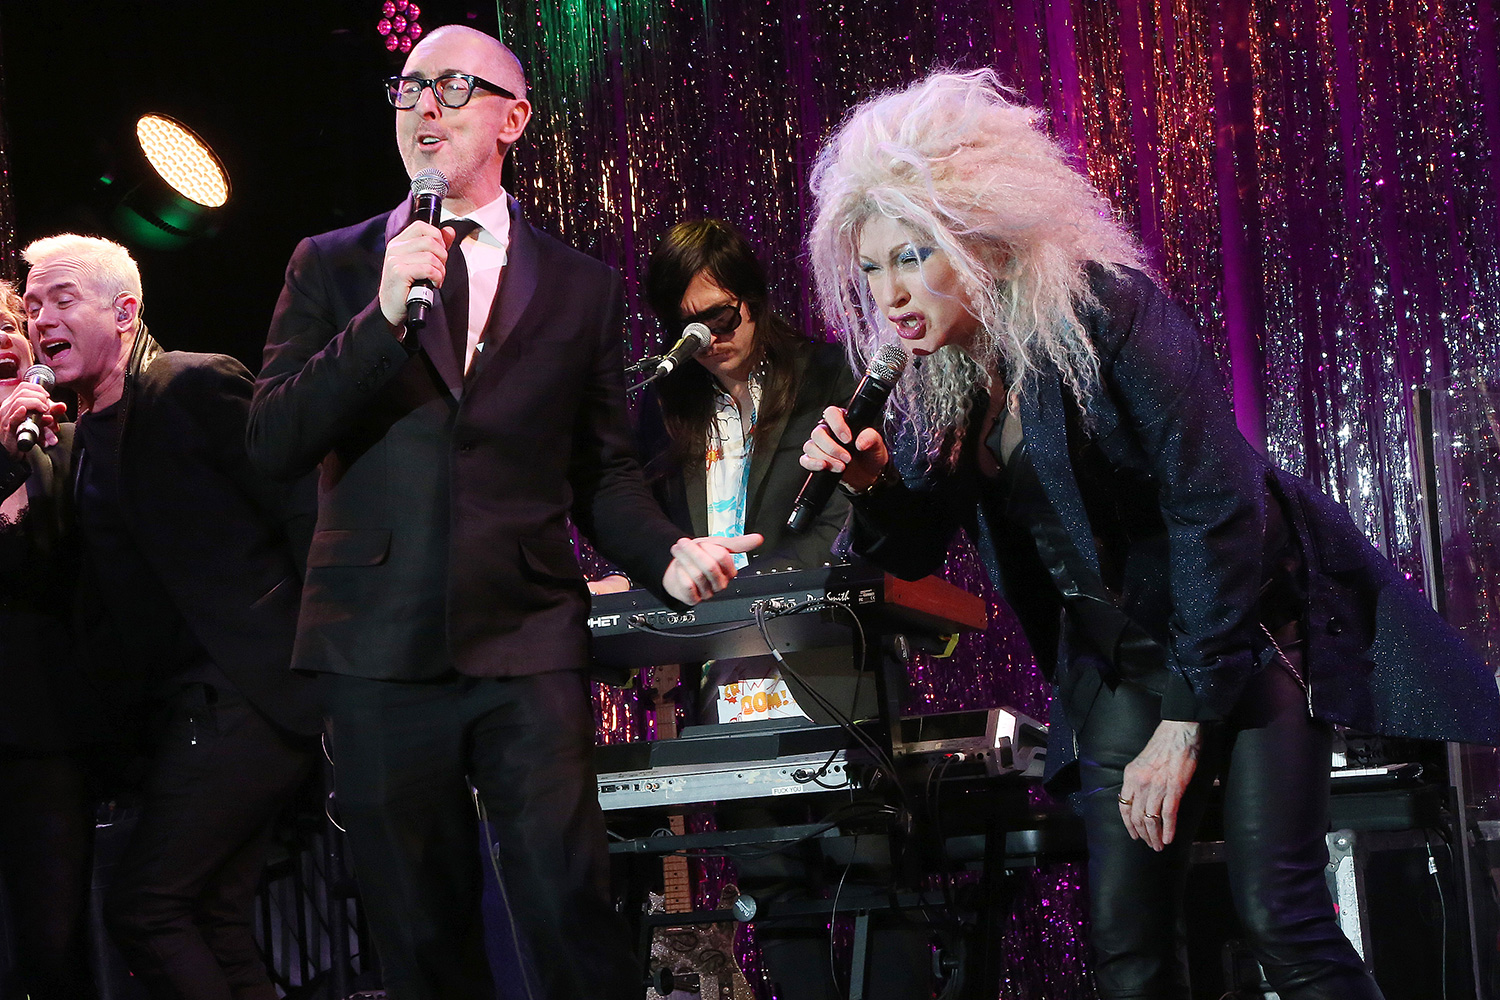 Alan Cumming and Cyndi Lauper perform at the 2020 Roundabout Theater Gala honoring Alan Cumming, Michael Kors & Lance LePere at The Ziegfeld Ballroom on March 2, 2020 in New York City